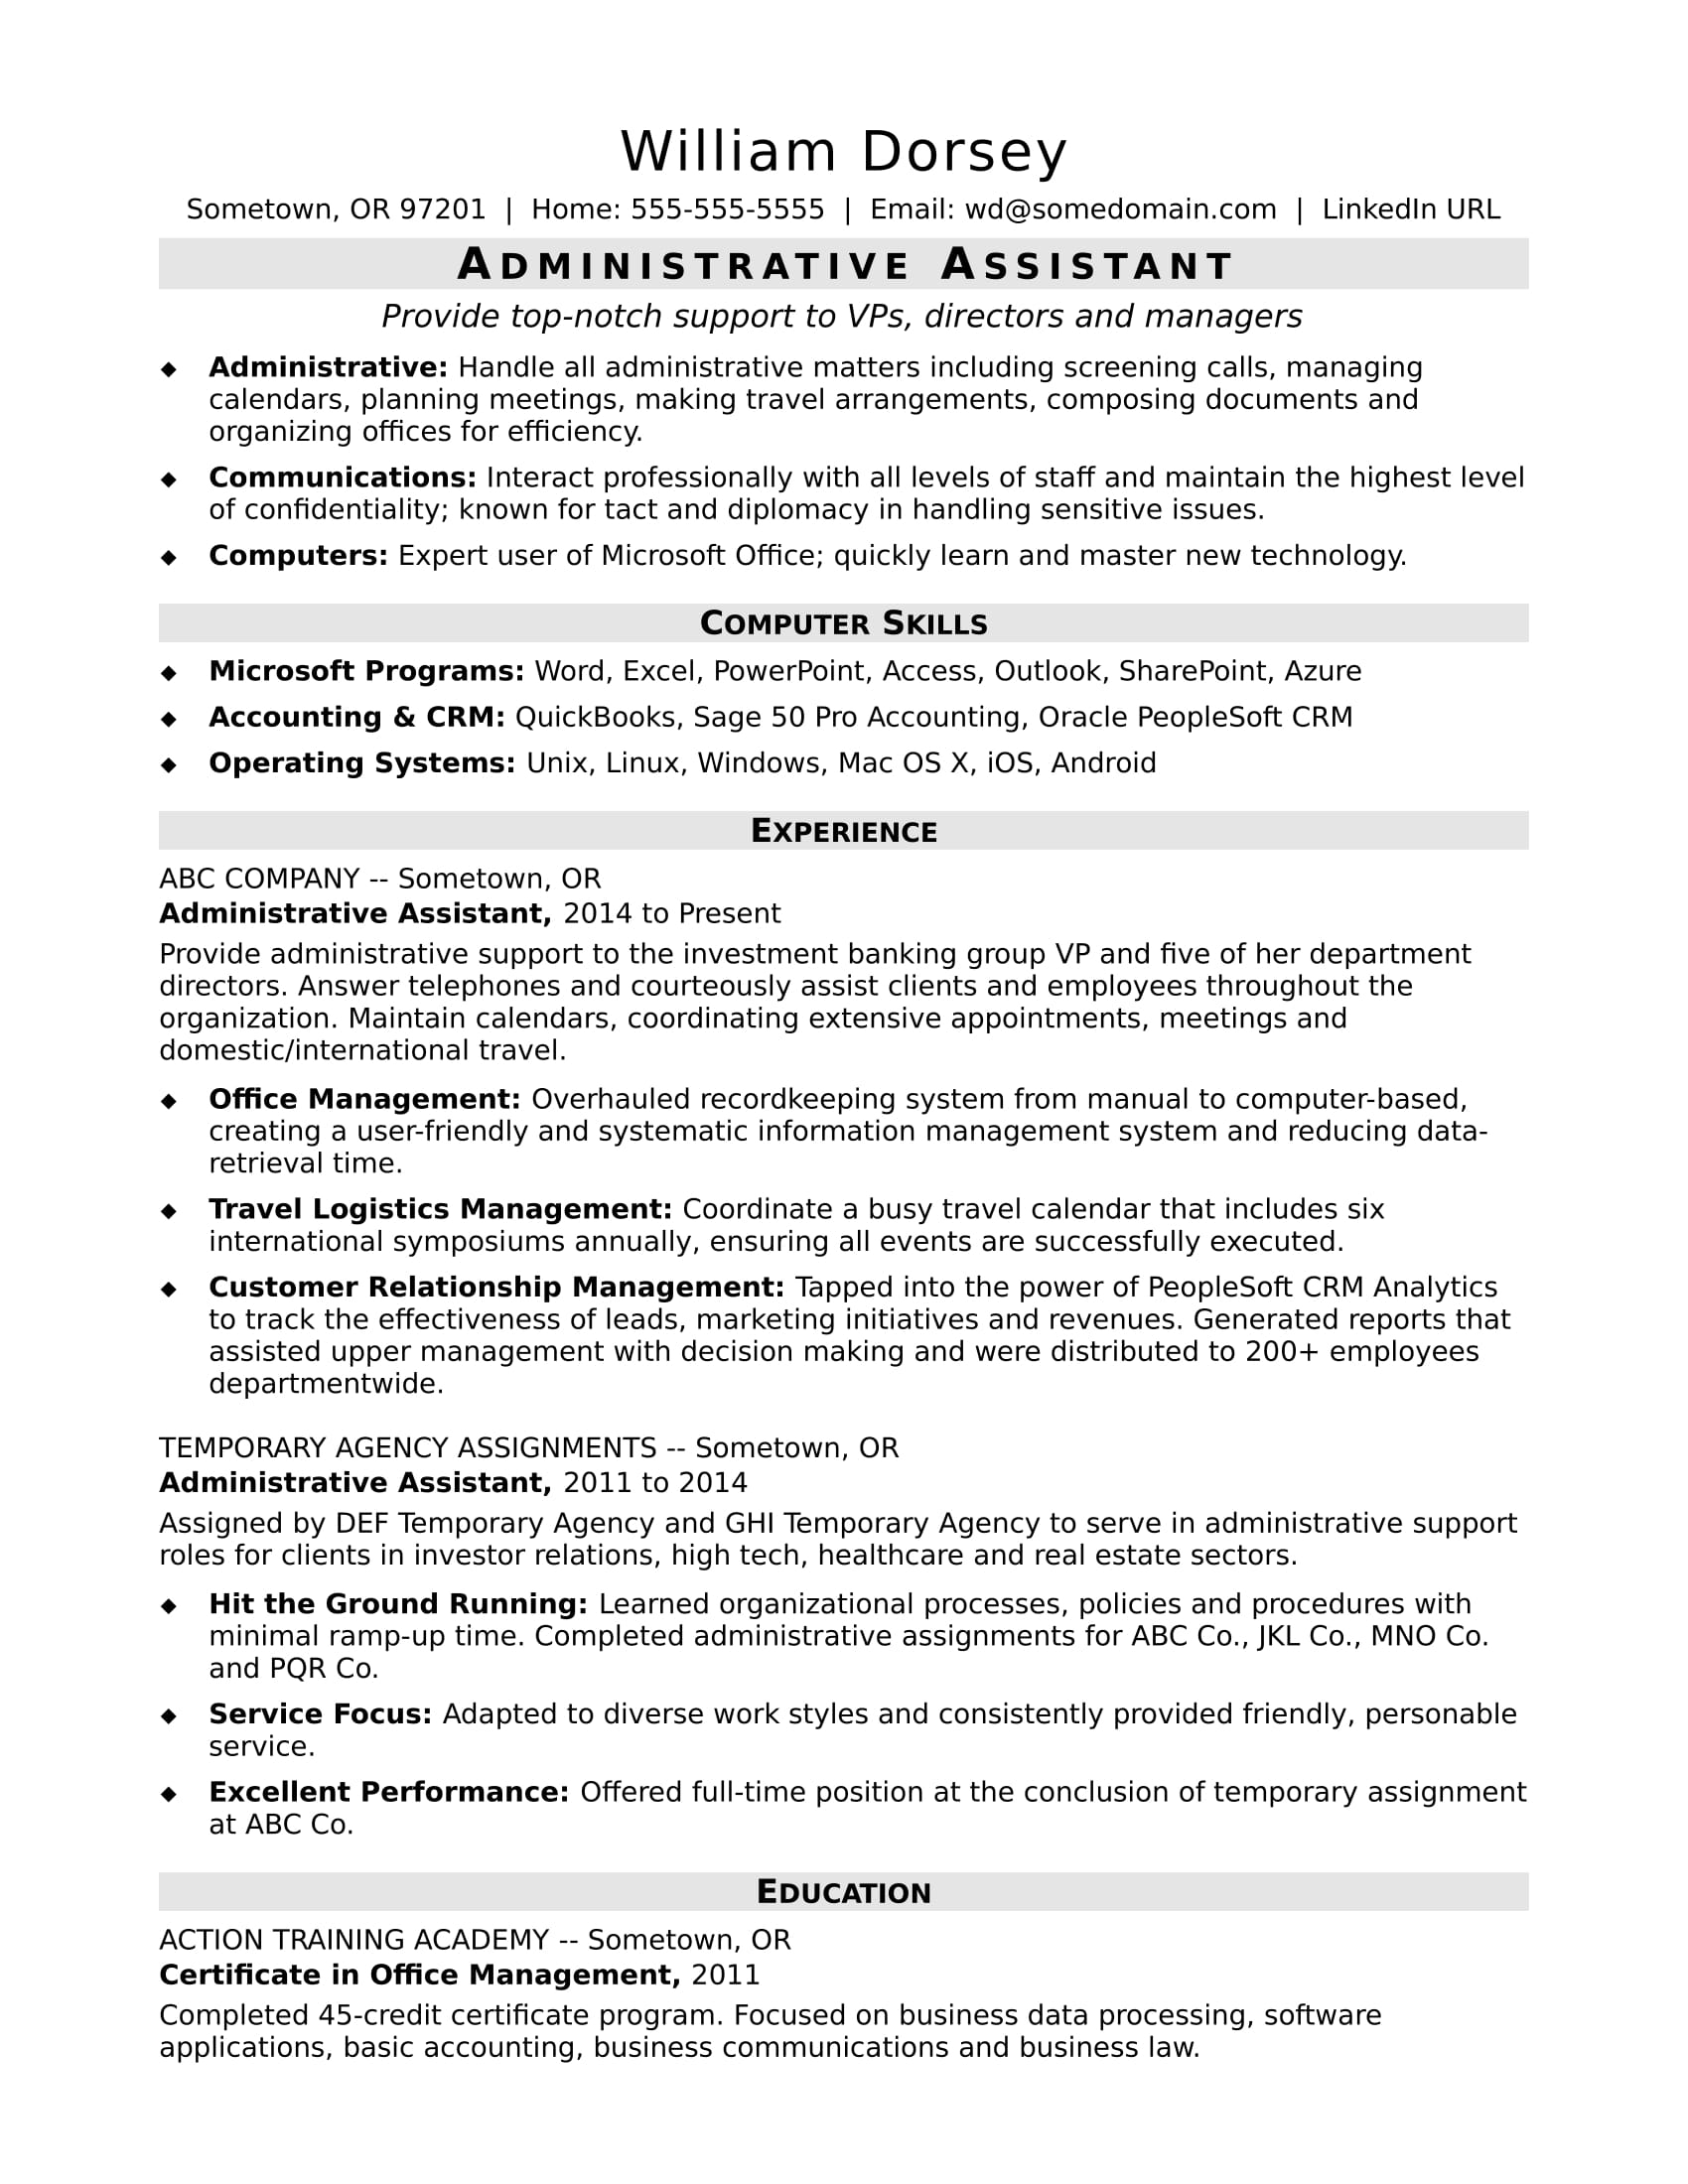 midlevel administrative assistant resume sample monster responsibilities ats friendly for Resume Administrative Assistant Resume Responsibilities